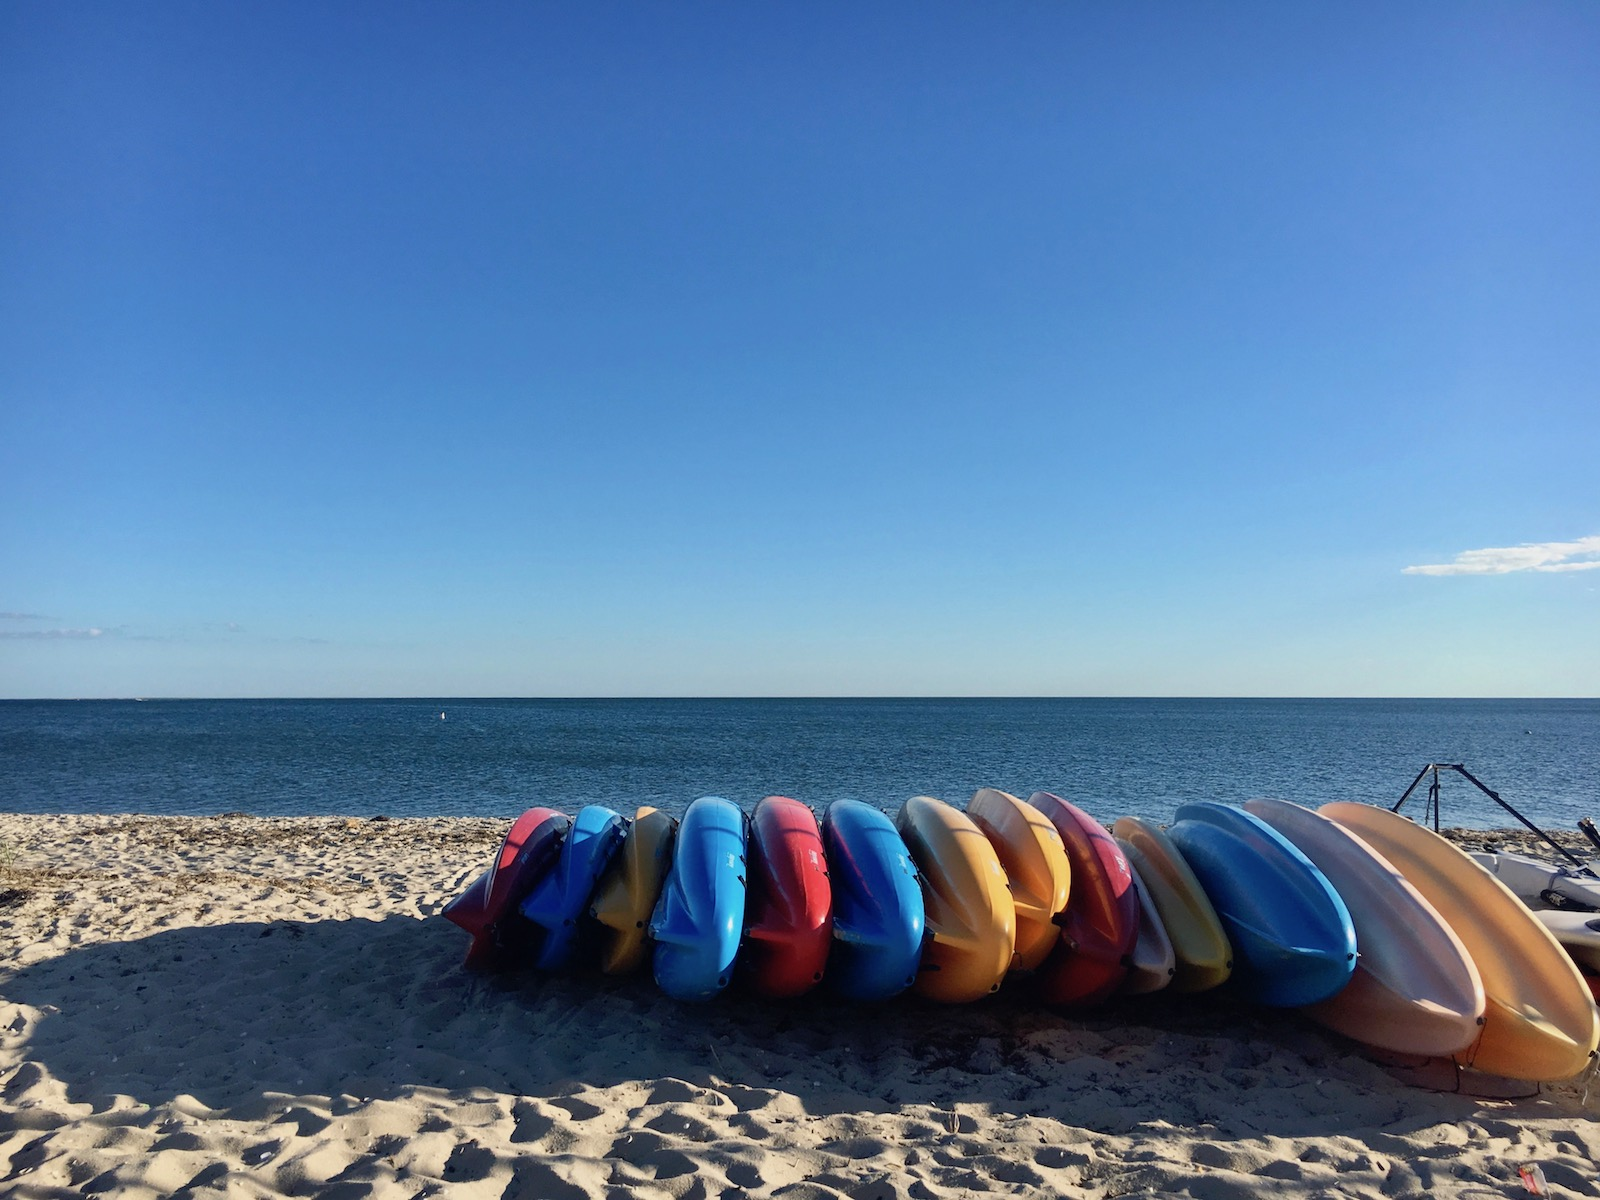 kayaks-rentals-kayaking-chatham-cape-cod-watersports